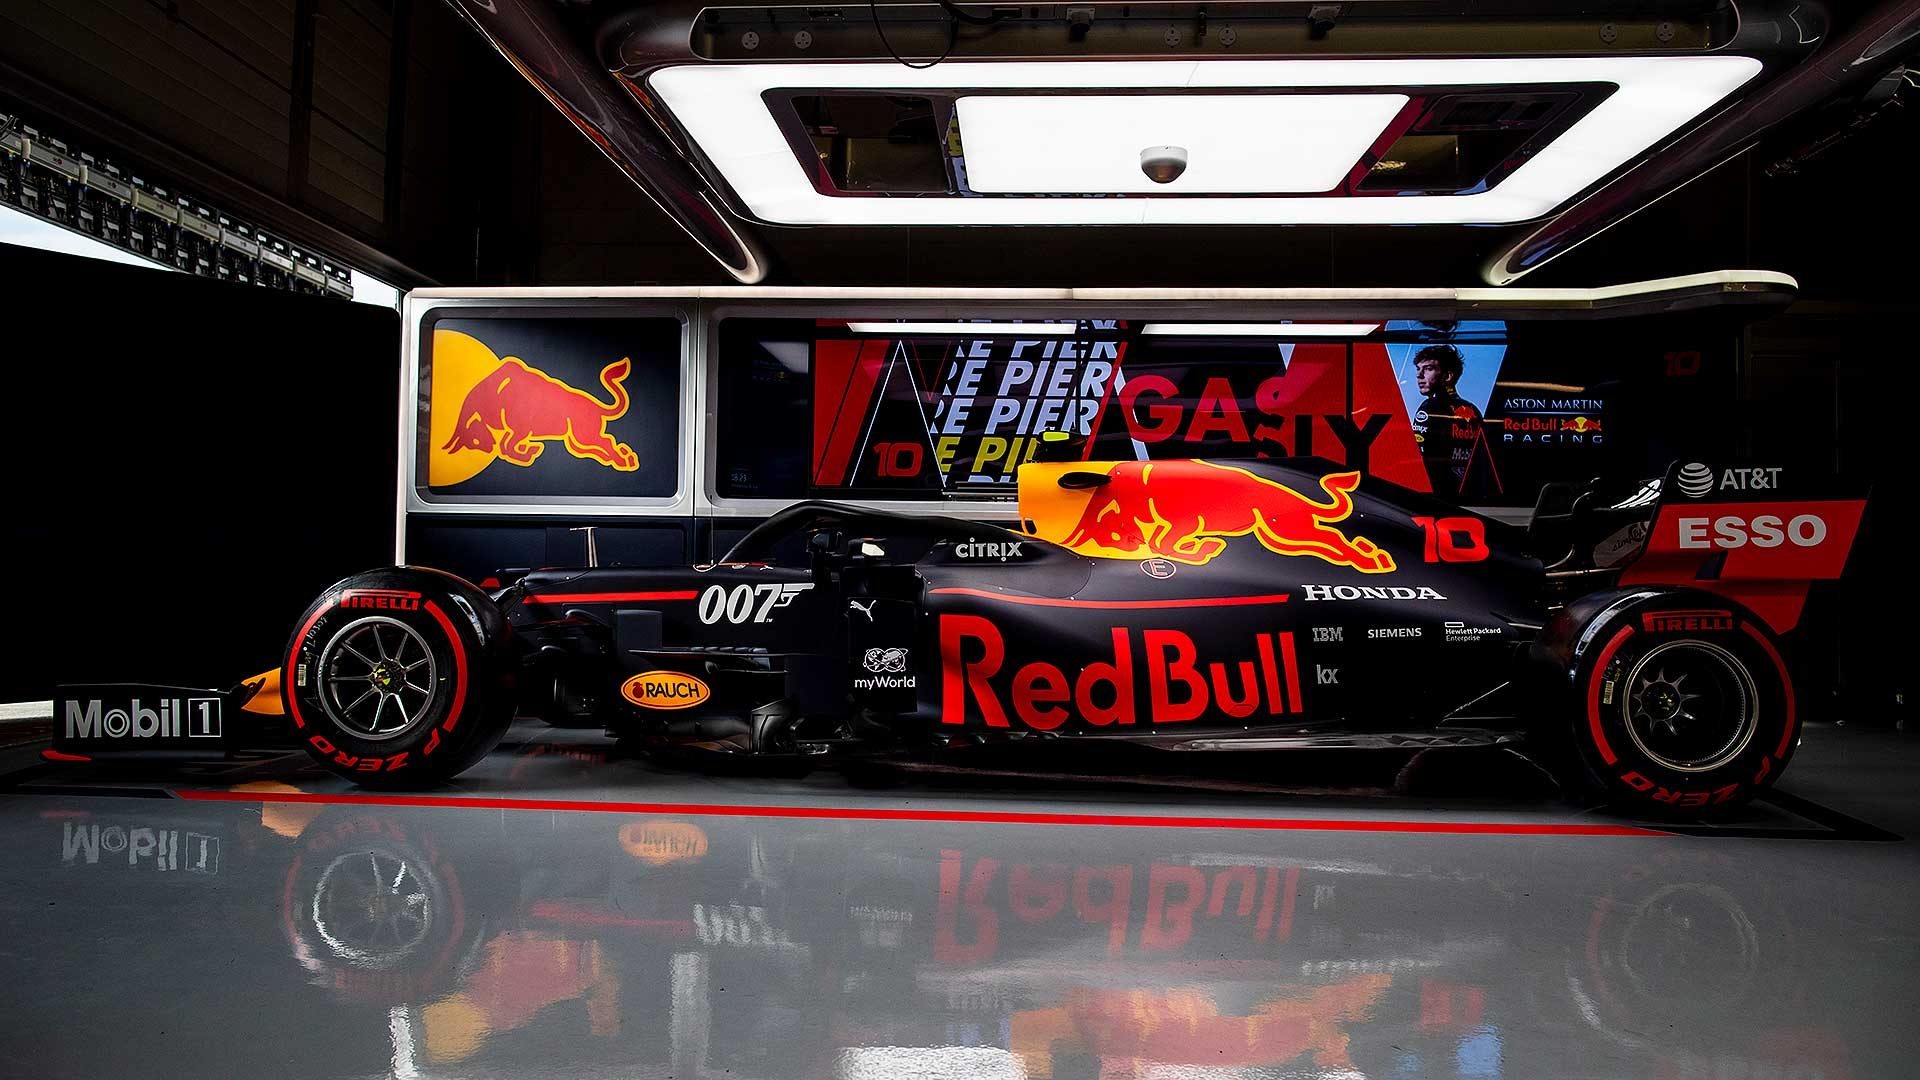 Bond Theme For Red Bull F1 Racers At Silverstone Gp Motoring Research